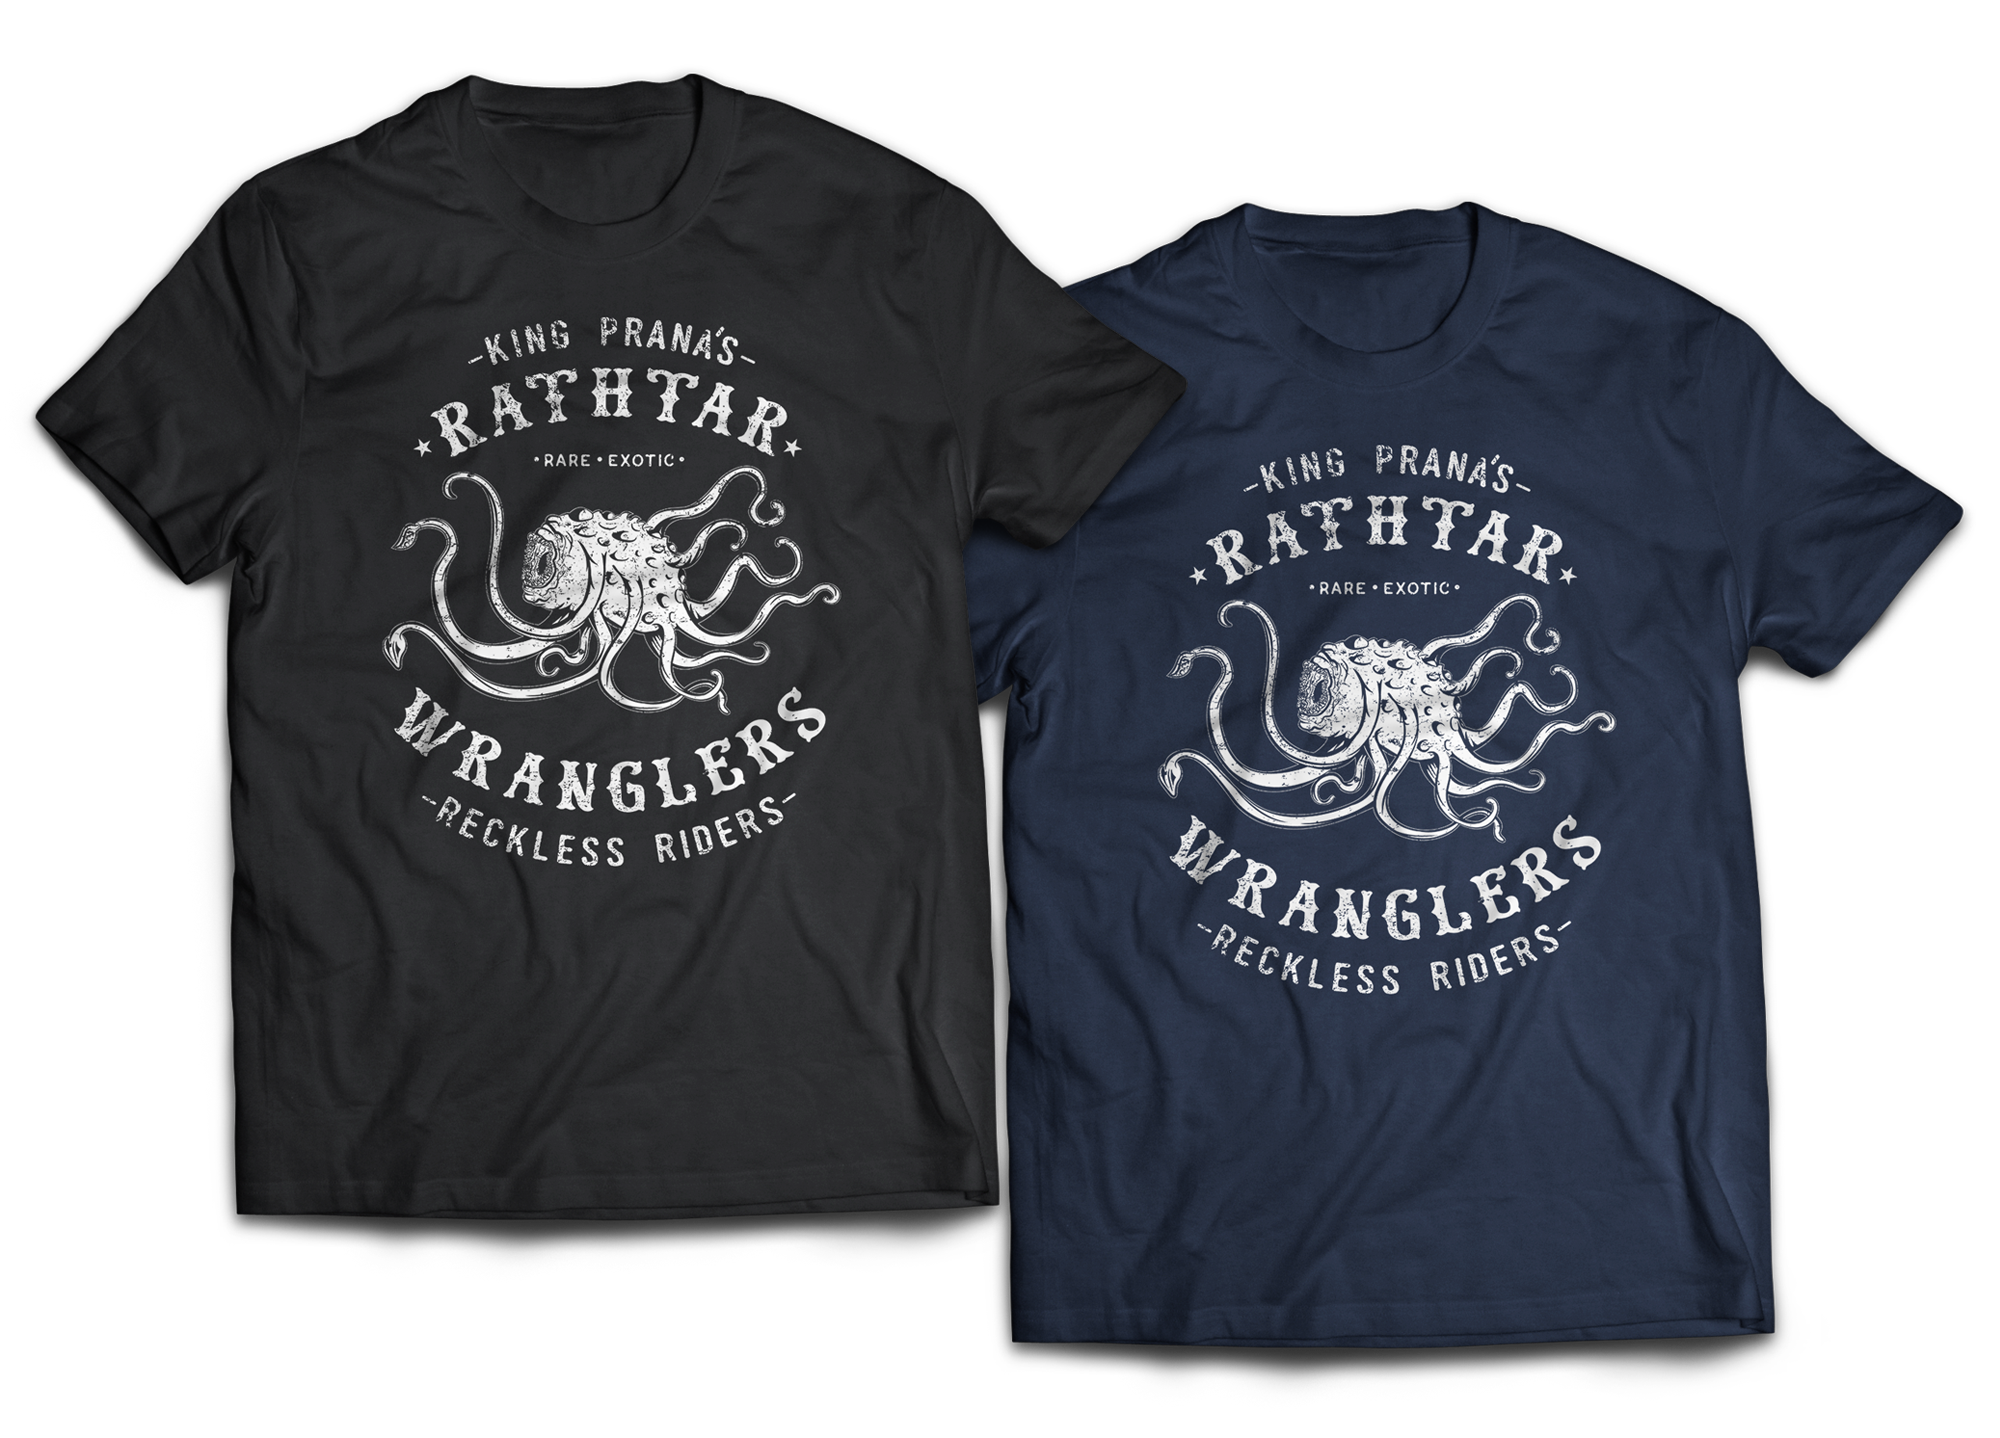 Rathtar Wrangler Star Wars T-Shirts JLane Design Teepublic